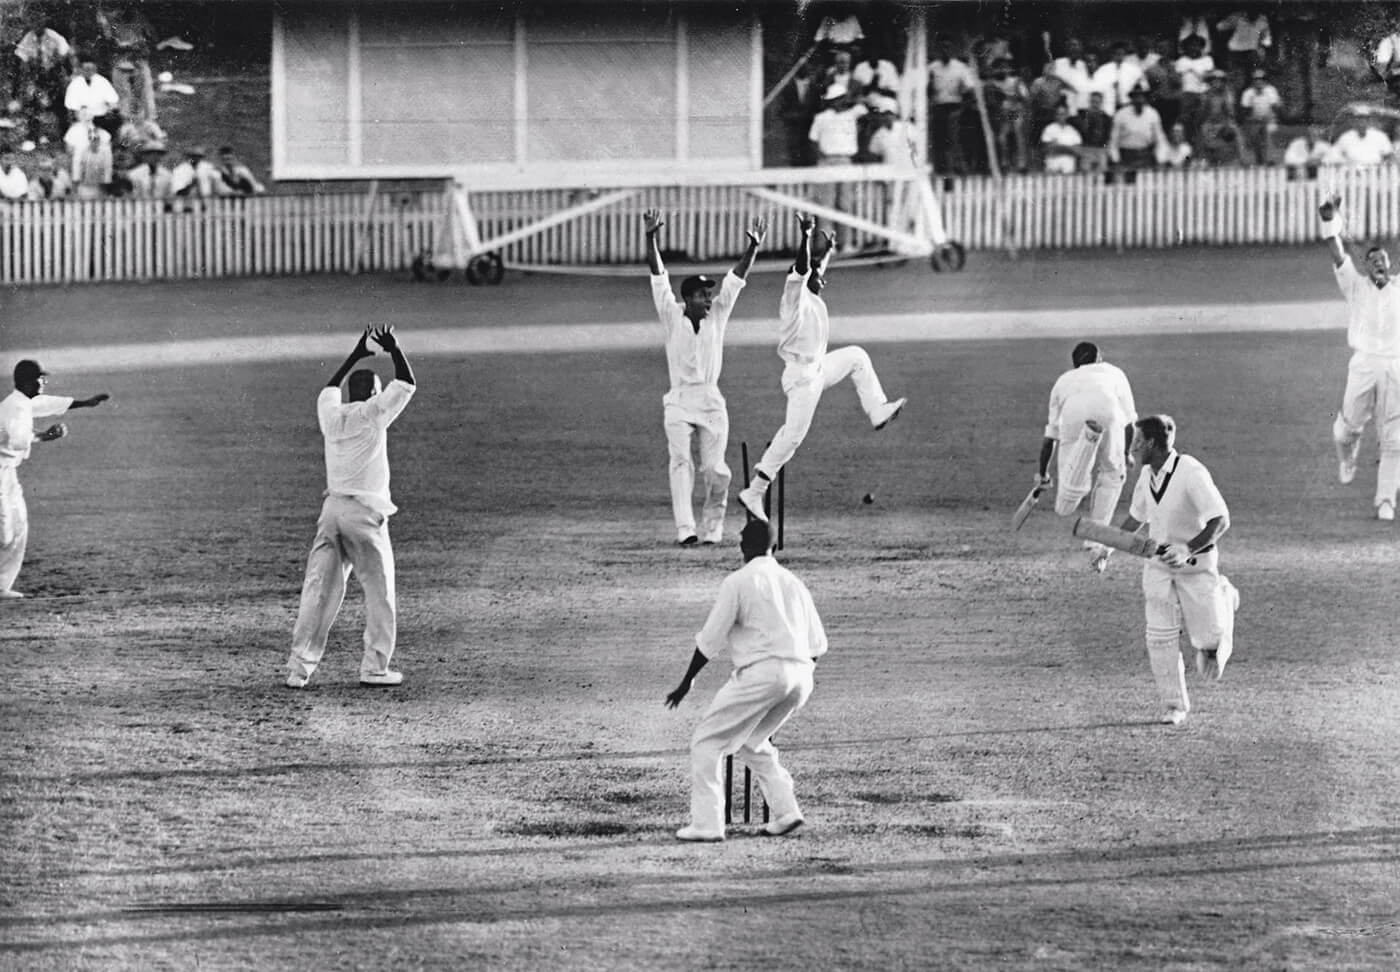 The final play of the first Tied Test | Cricket Photo | ESPN Cricinfo